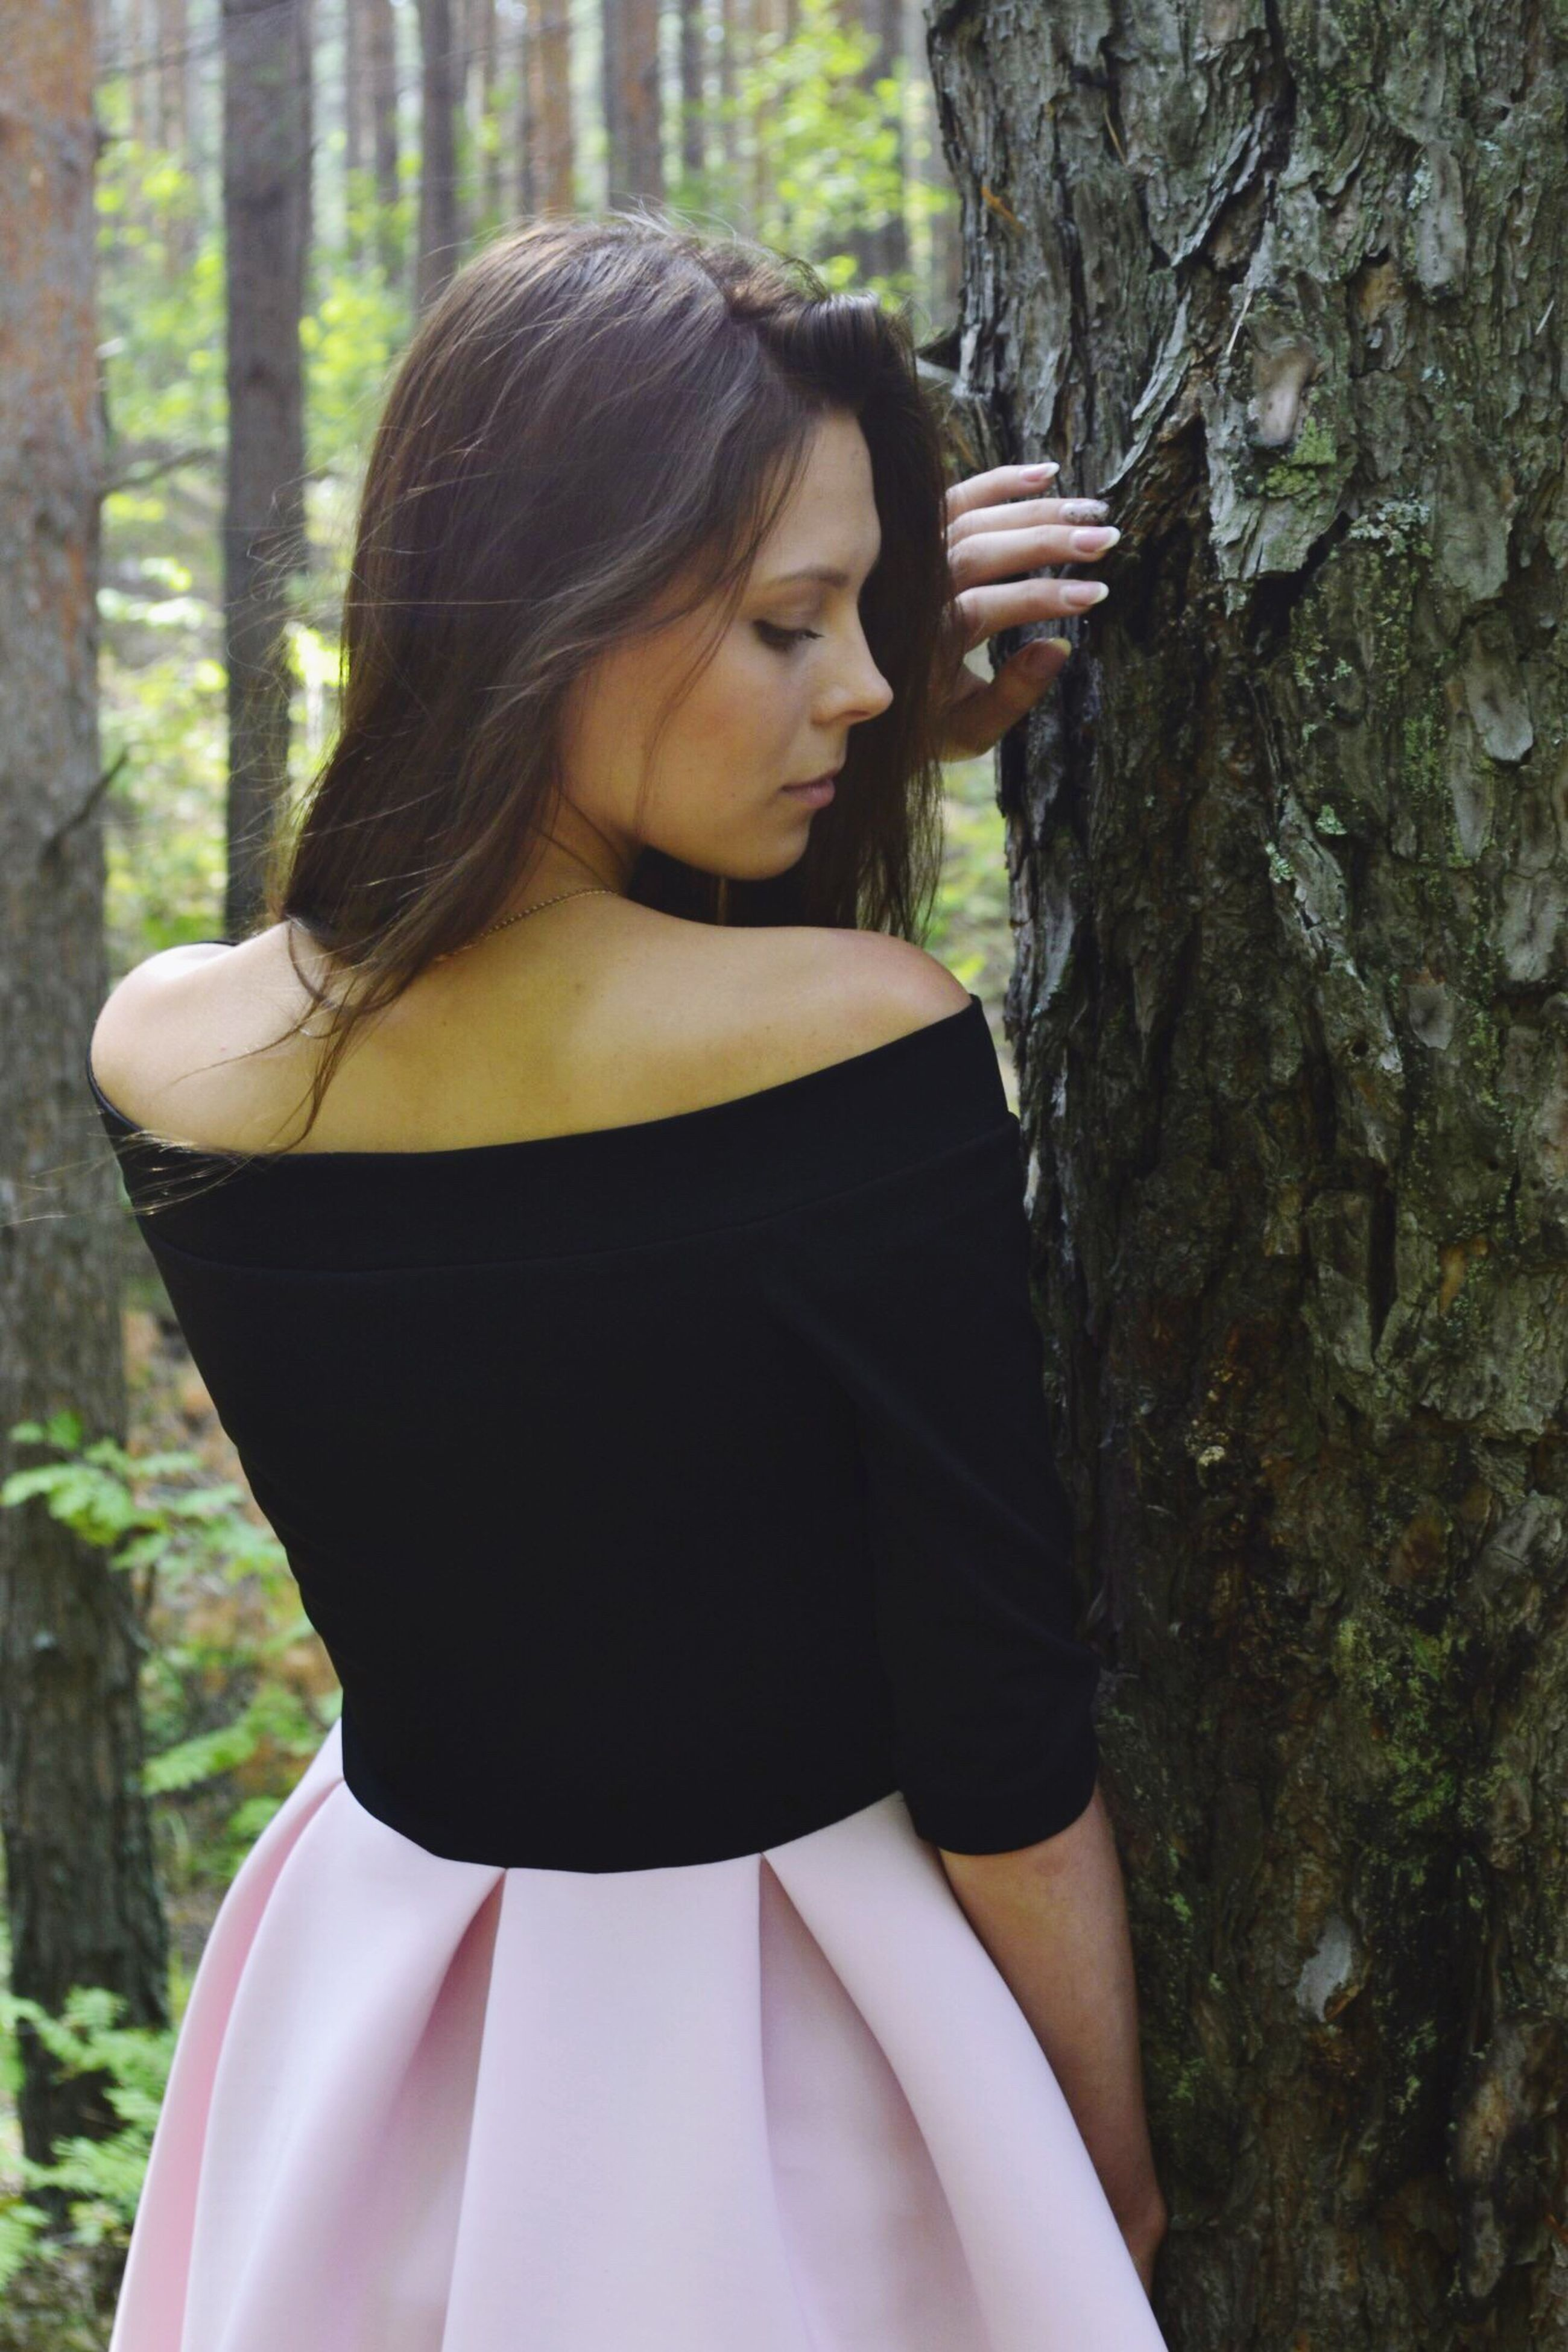 young adult, person, young women, lifestyles, casual clothing, leisure activity, long hair, front view, portrait, looking away, focus on foreground, contemplation, black hair, beauty, outdoors, sensuality, day